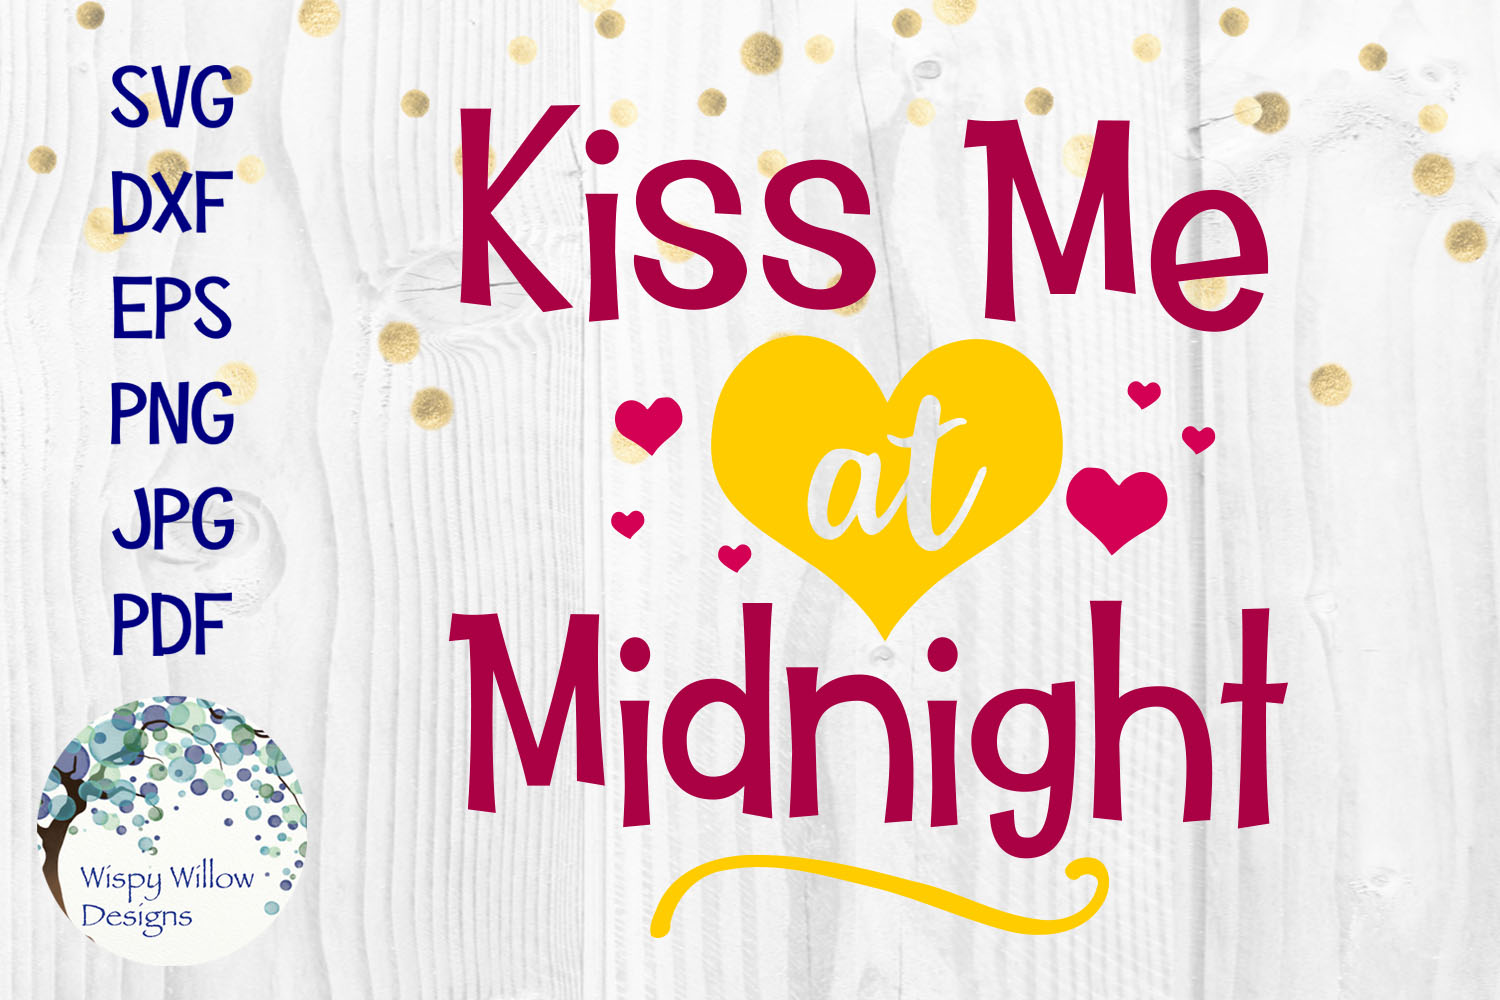 New Year's Eve SVG Cut File Bundle | Kiss Me at Midnight SVG example image 2